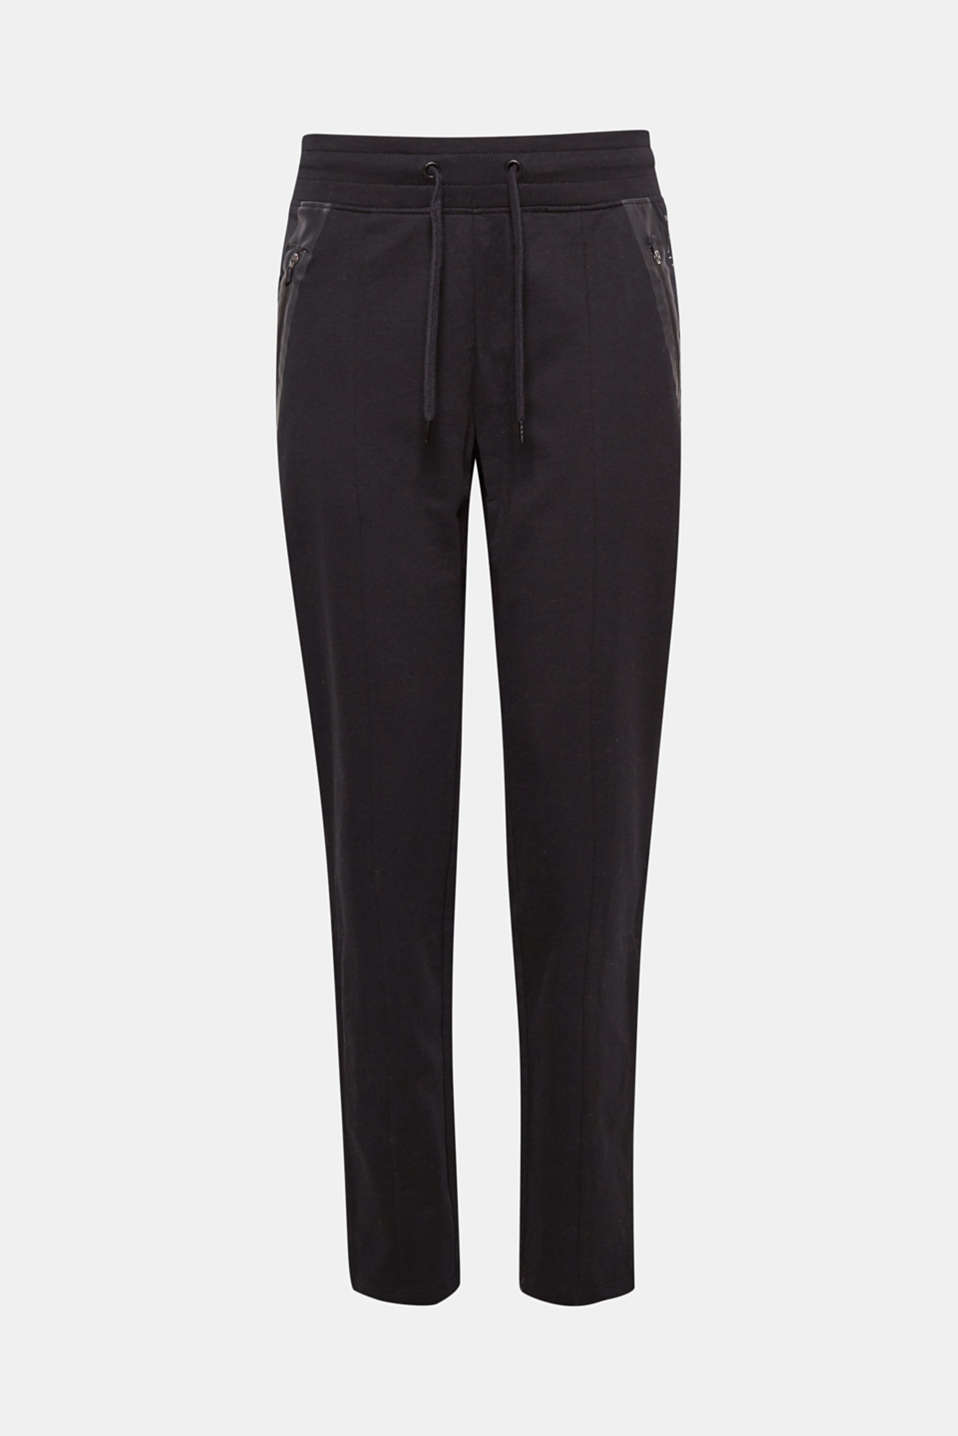 The decorative, rubberised trims on the zip pockets make these sweat tracksuit bottoms stylishly eye-catching!